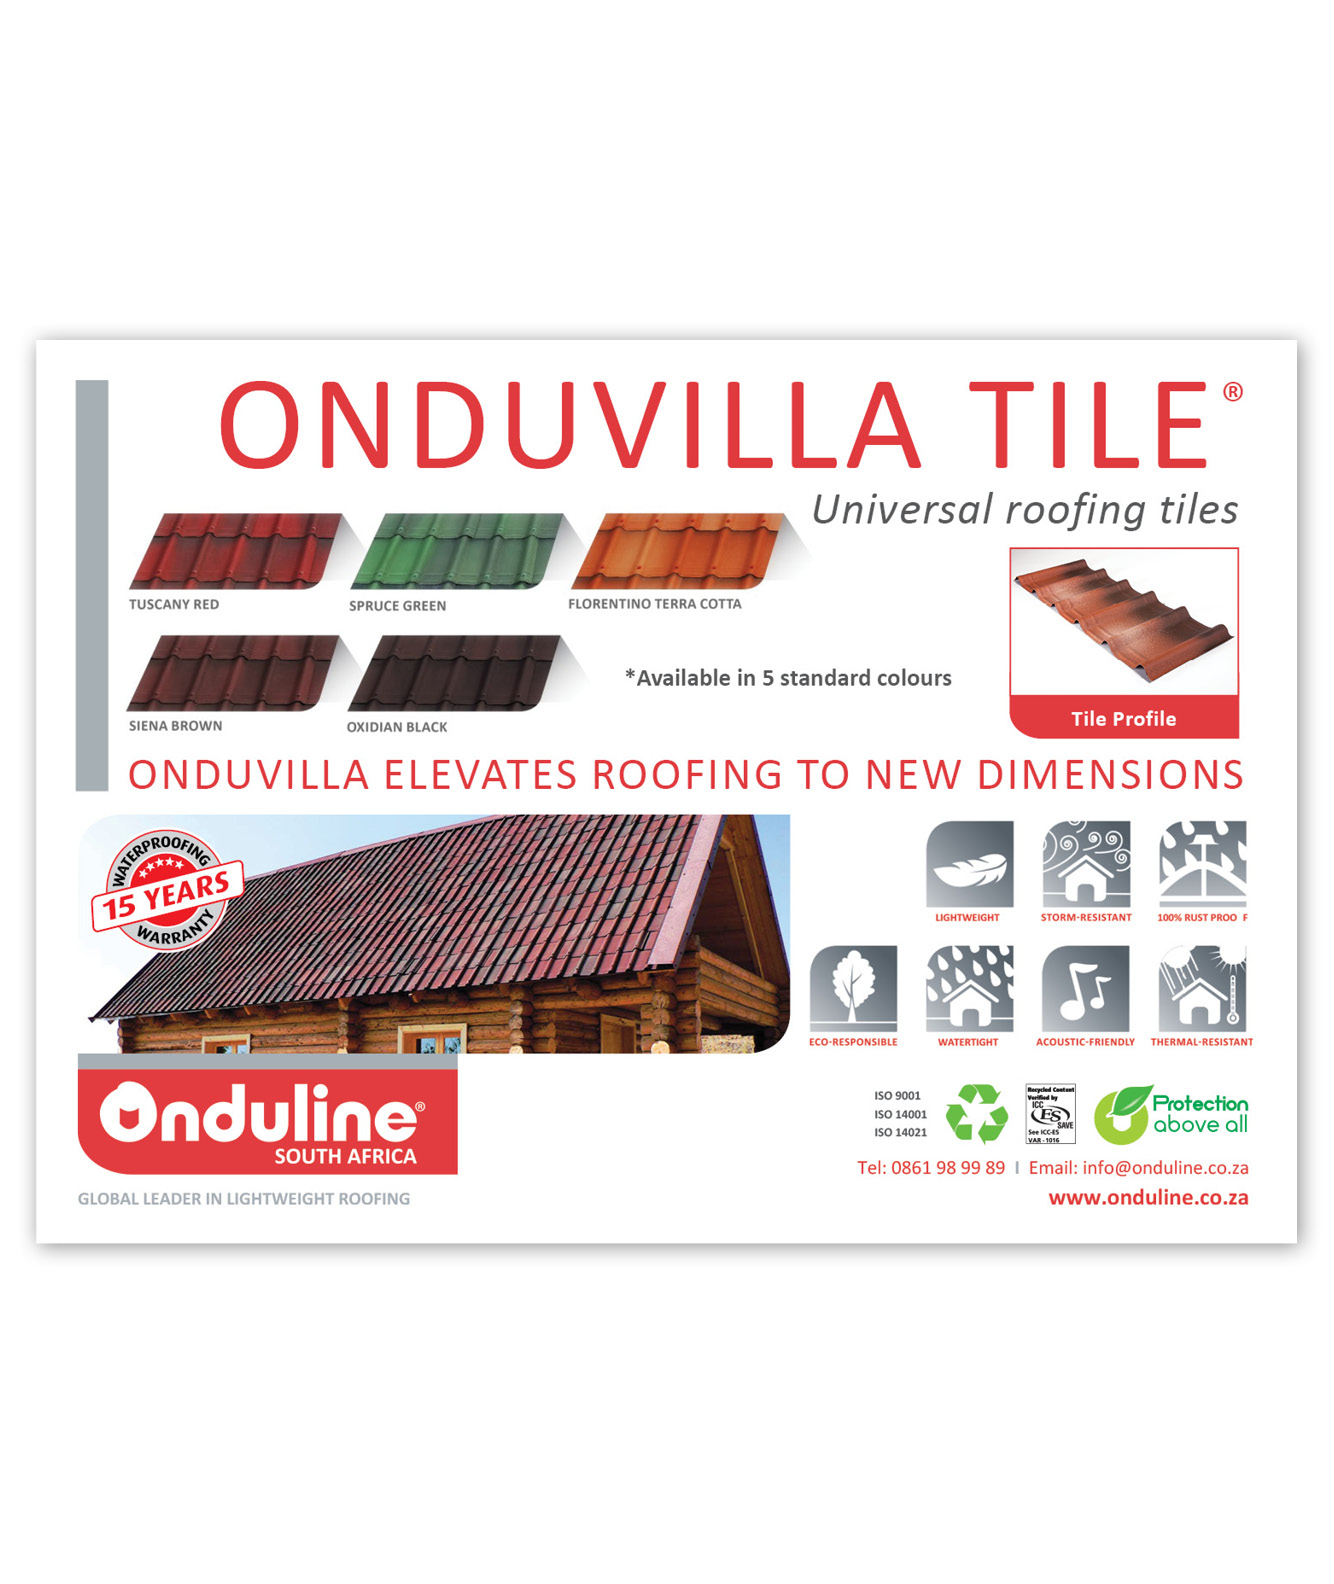 Onduline Advert Design